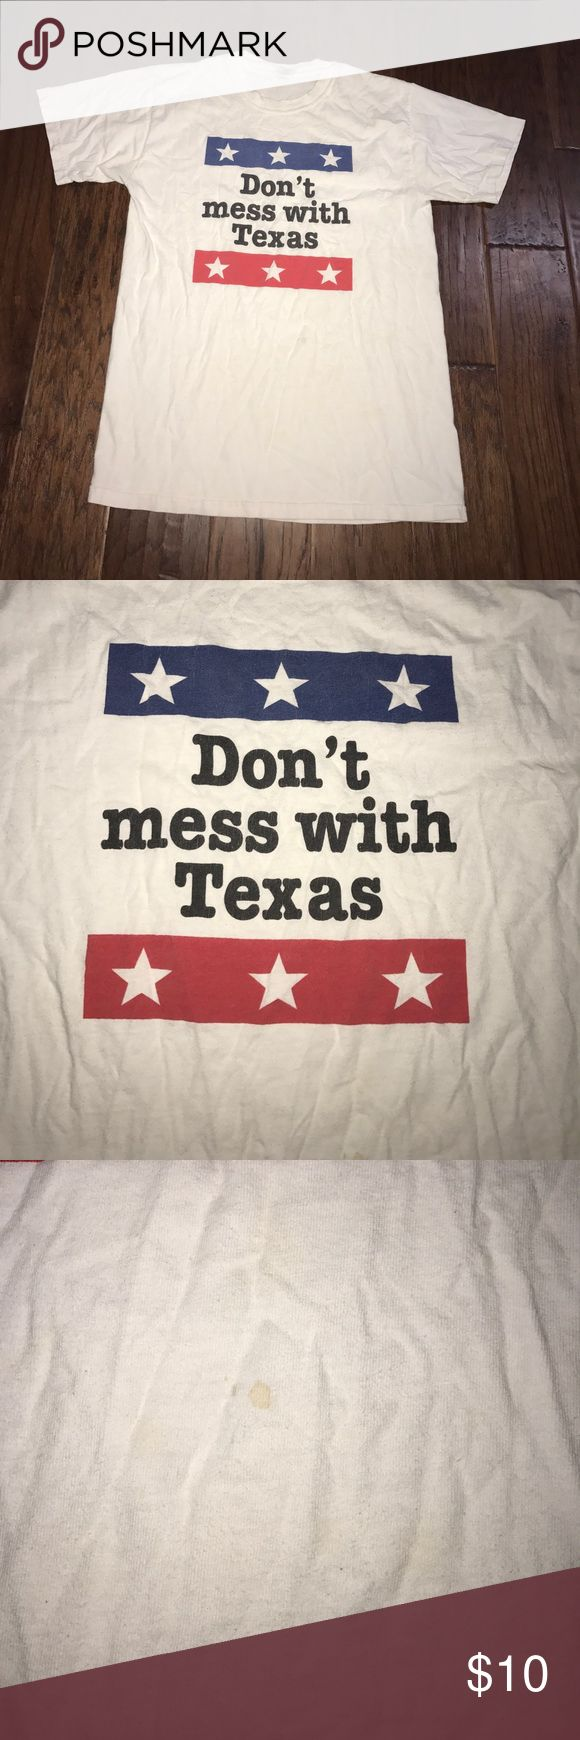 DON'T MESS WITH TEXAS TEE M in vintage condition some stains see photo. Great for a DIY cut up tee Tops Tees - Short Sleeve